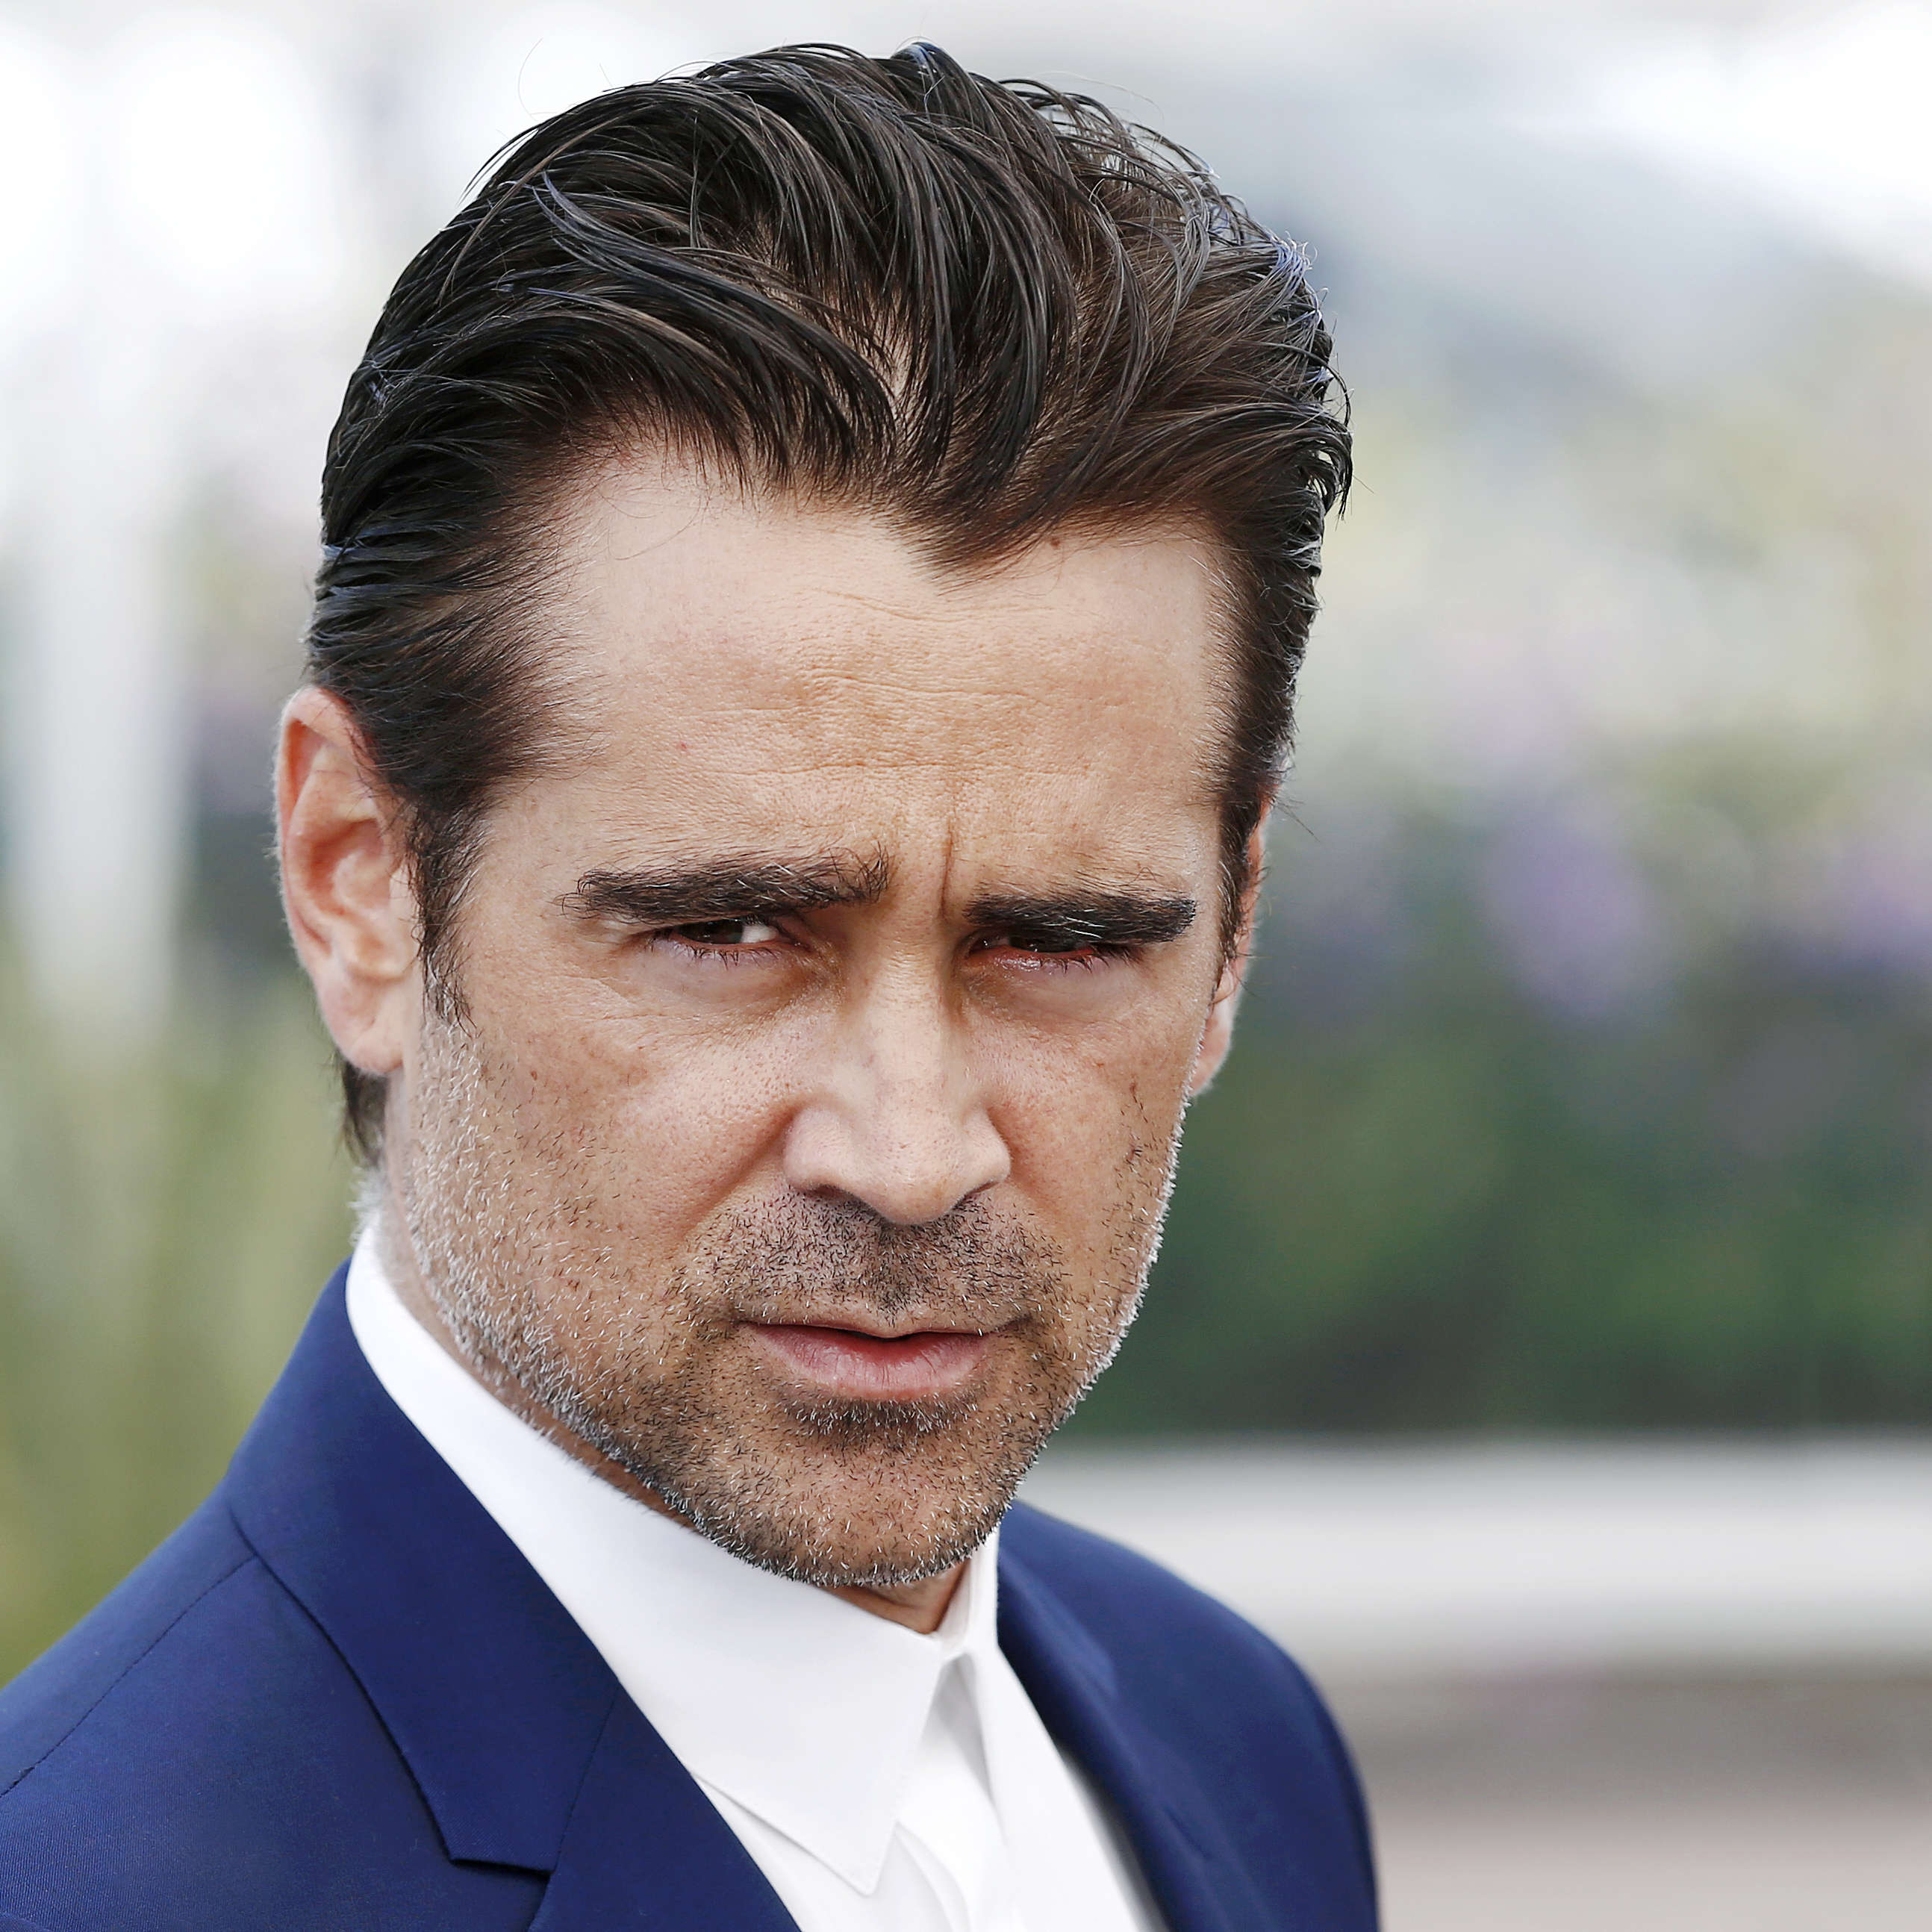 Mens-Hairstyles Over 40